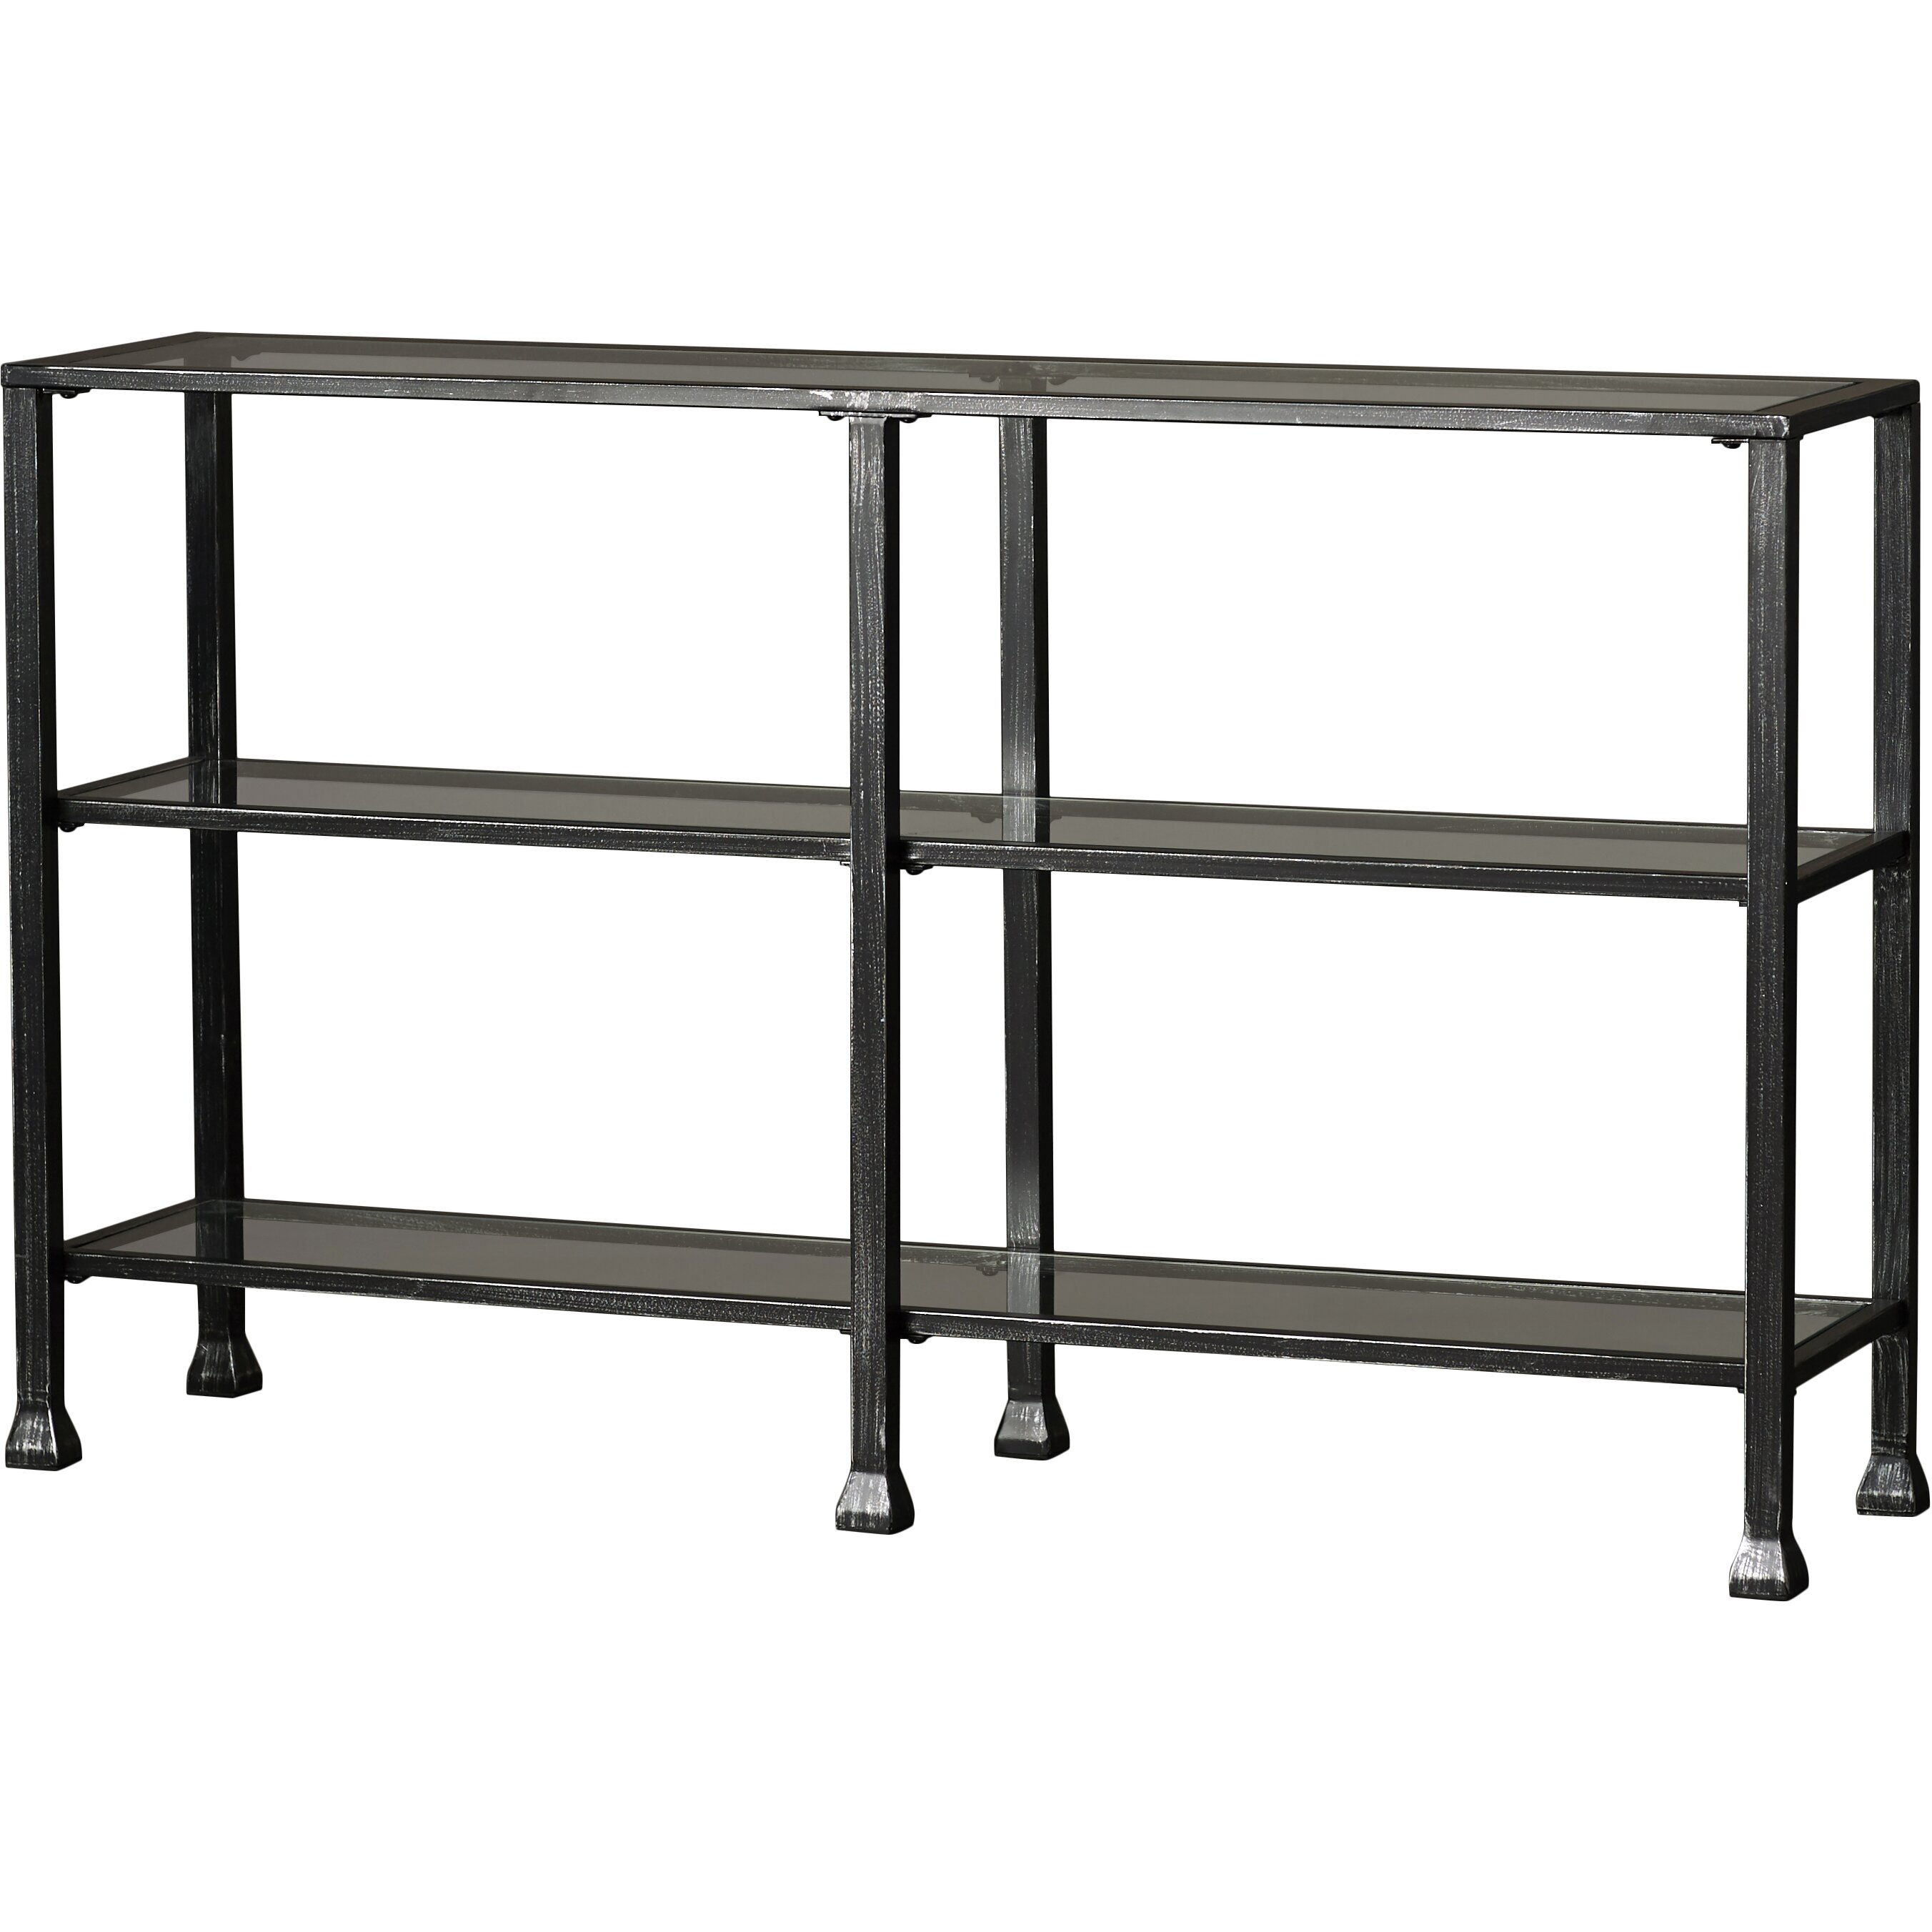 Queen Size Quad Fold Folding Bed Frame together with 560557484846292514 furthermore Reba Console Table ZIPC1767 ZIPC1767 moreover WE02 also Lago Vista Chocolate 2 Pc Sectional 1011646p. on full size sofa beds